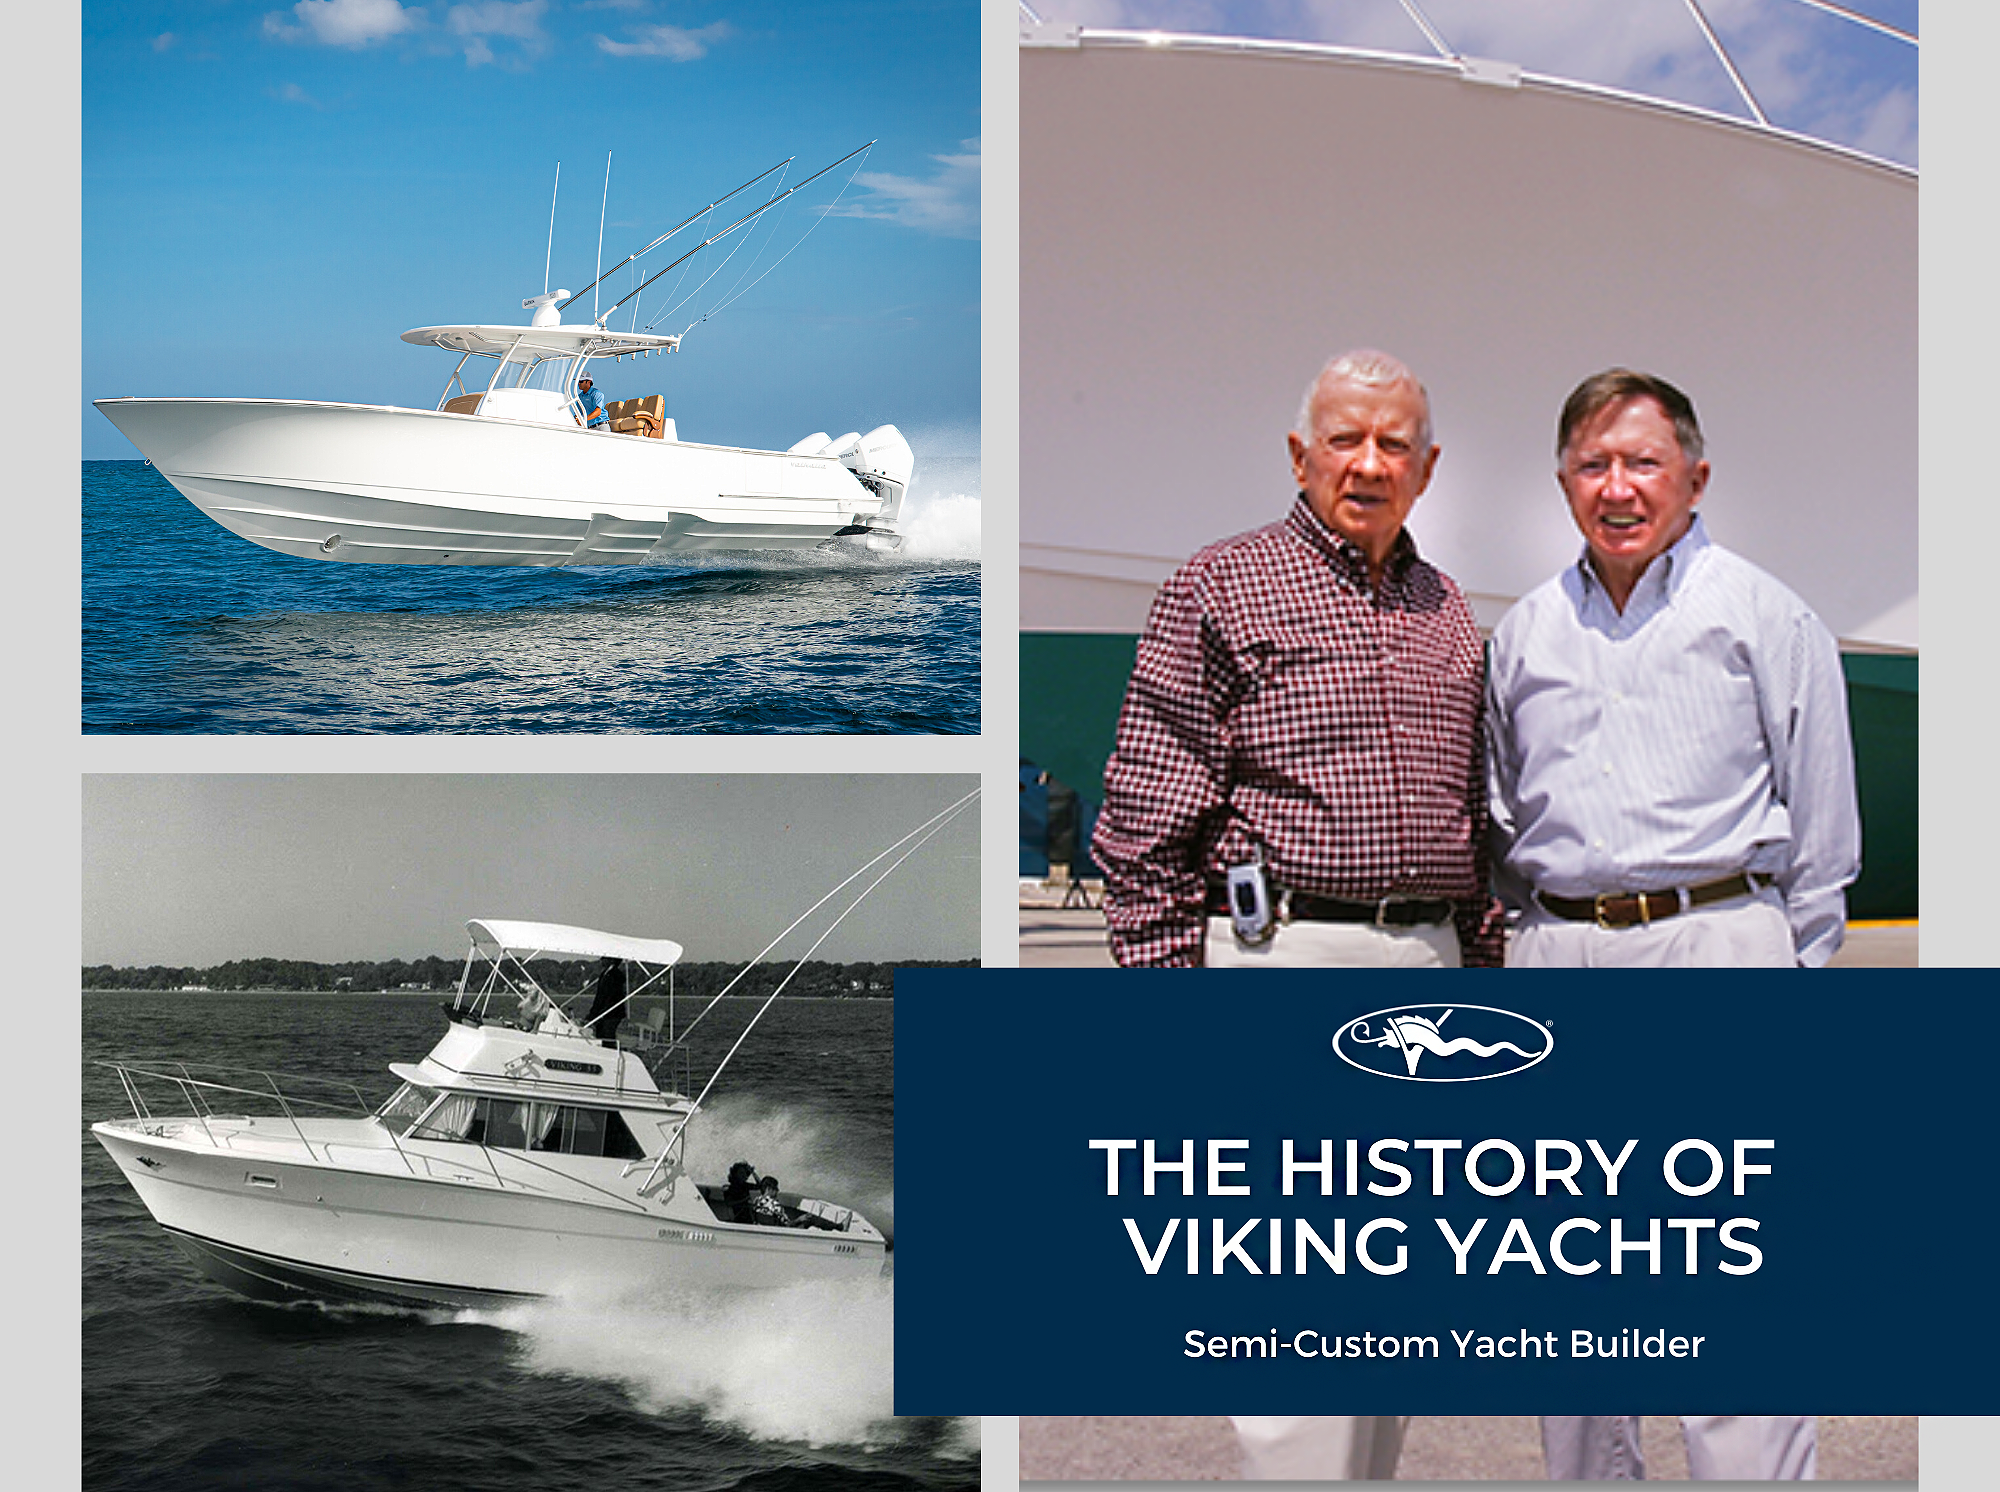 History of Viking Yachts